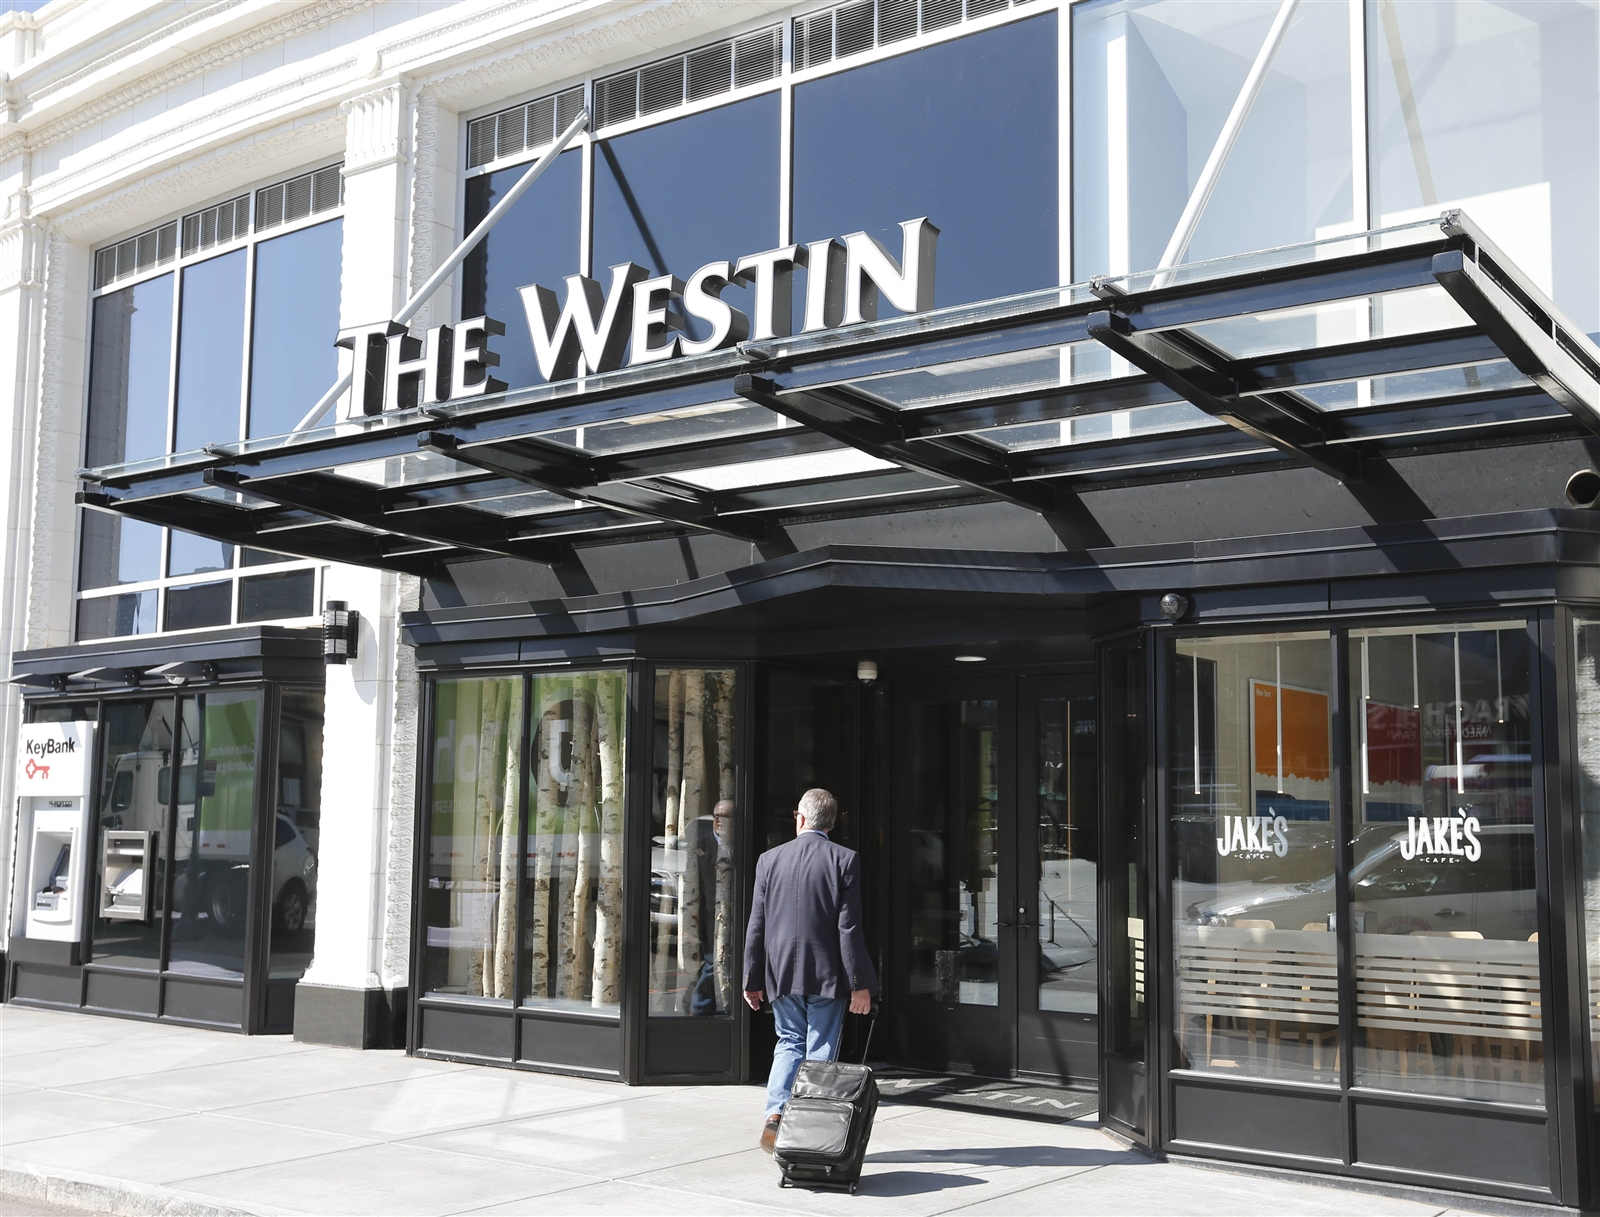 The Westin at 250 Delaware Avenue in downtown Buffalo.